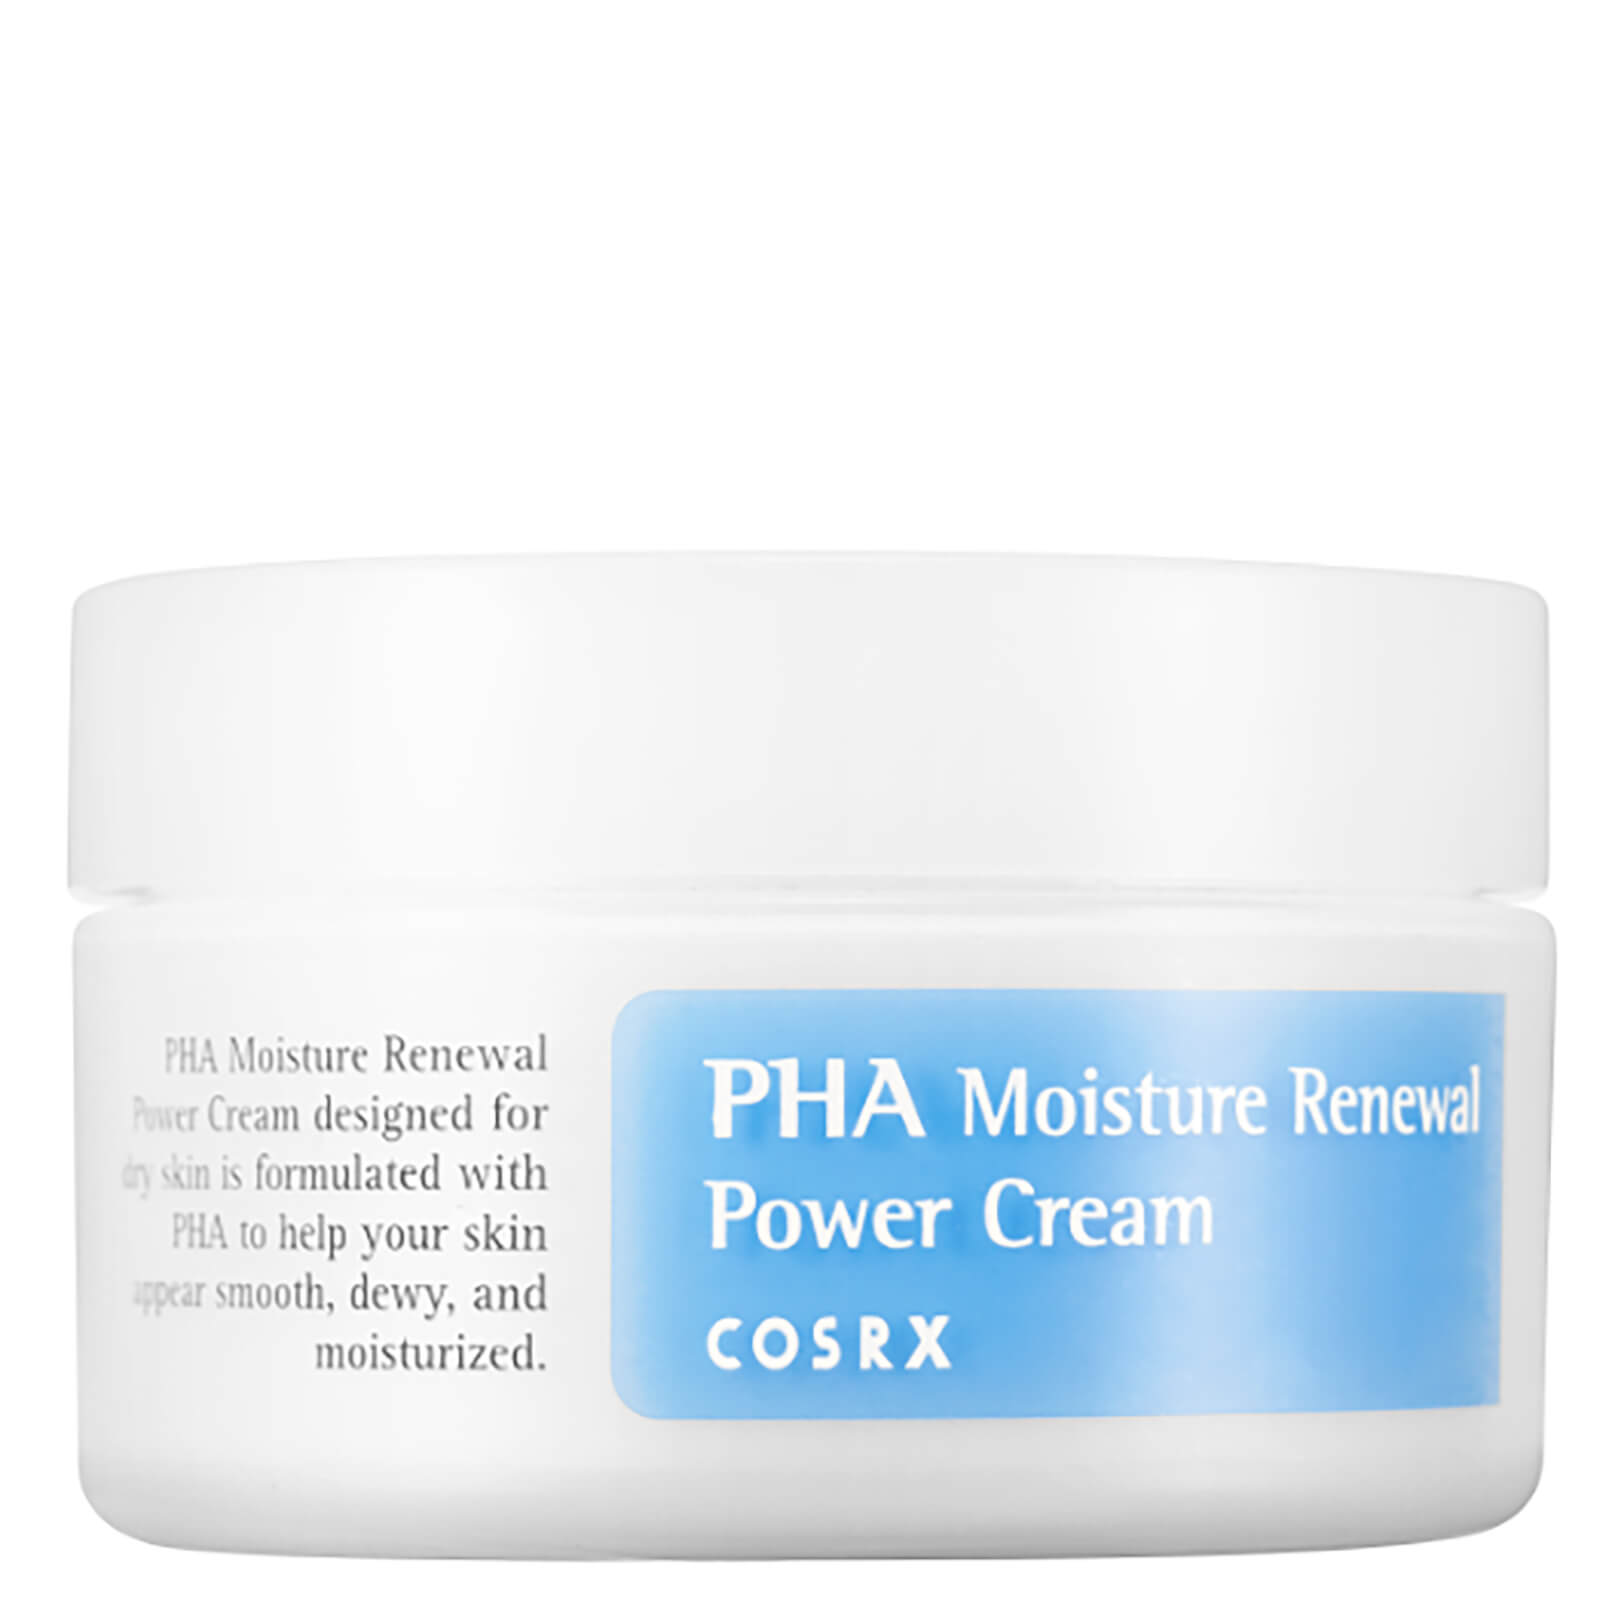 COSRX PHA Moisture Renewal Power Cream 110g